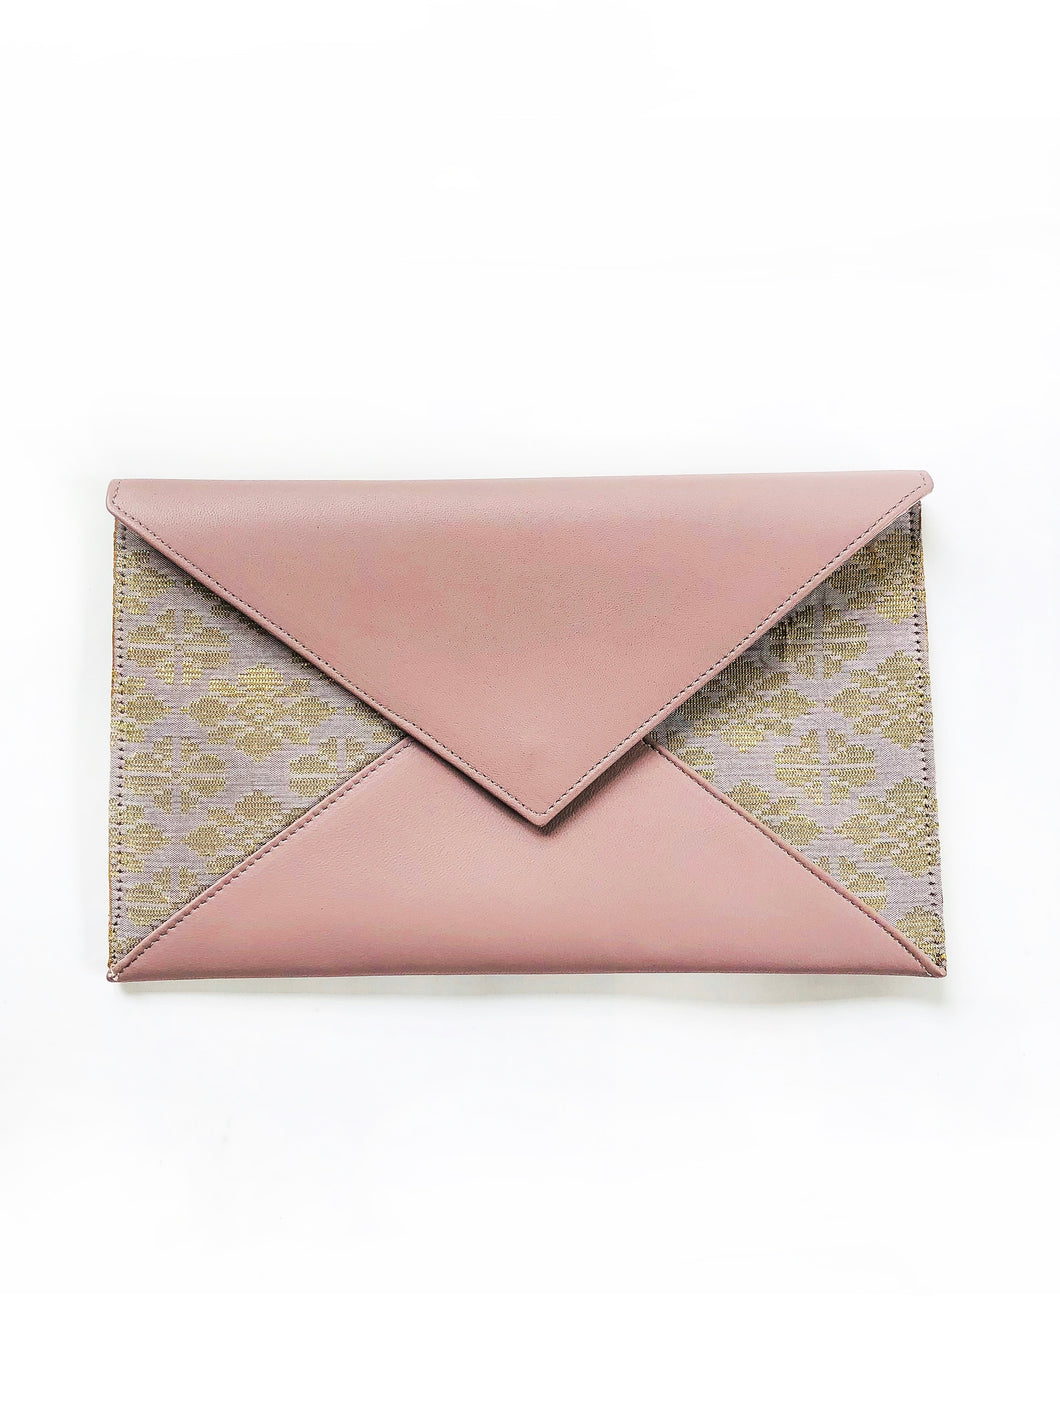 Saloma Big Envelope Bag (Taupe)